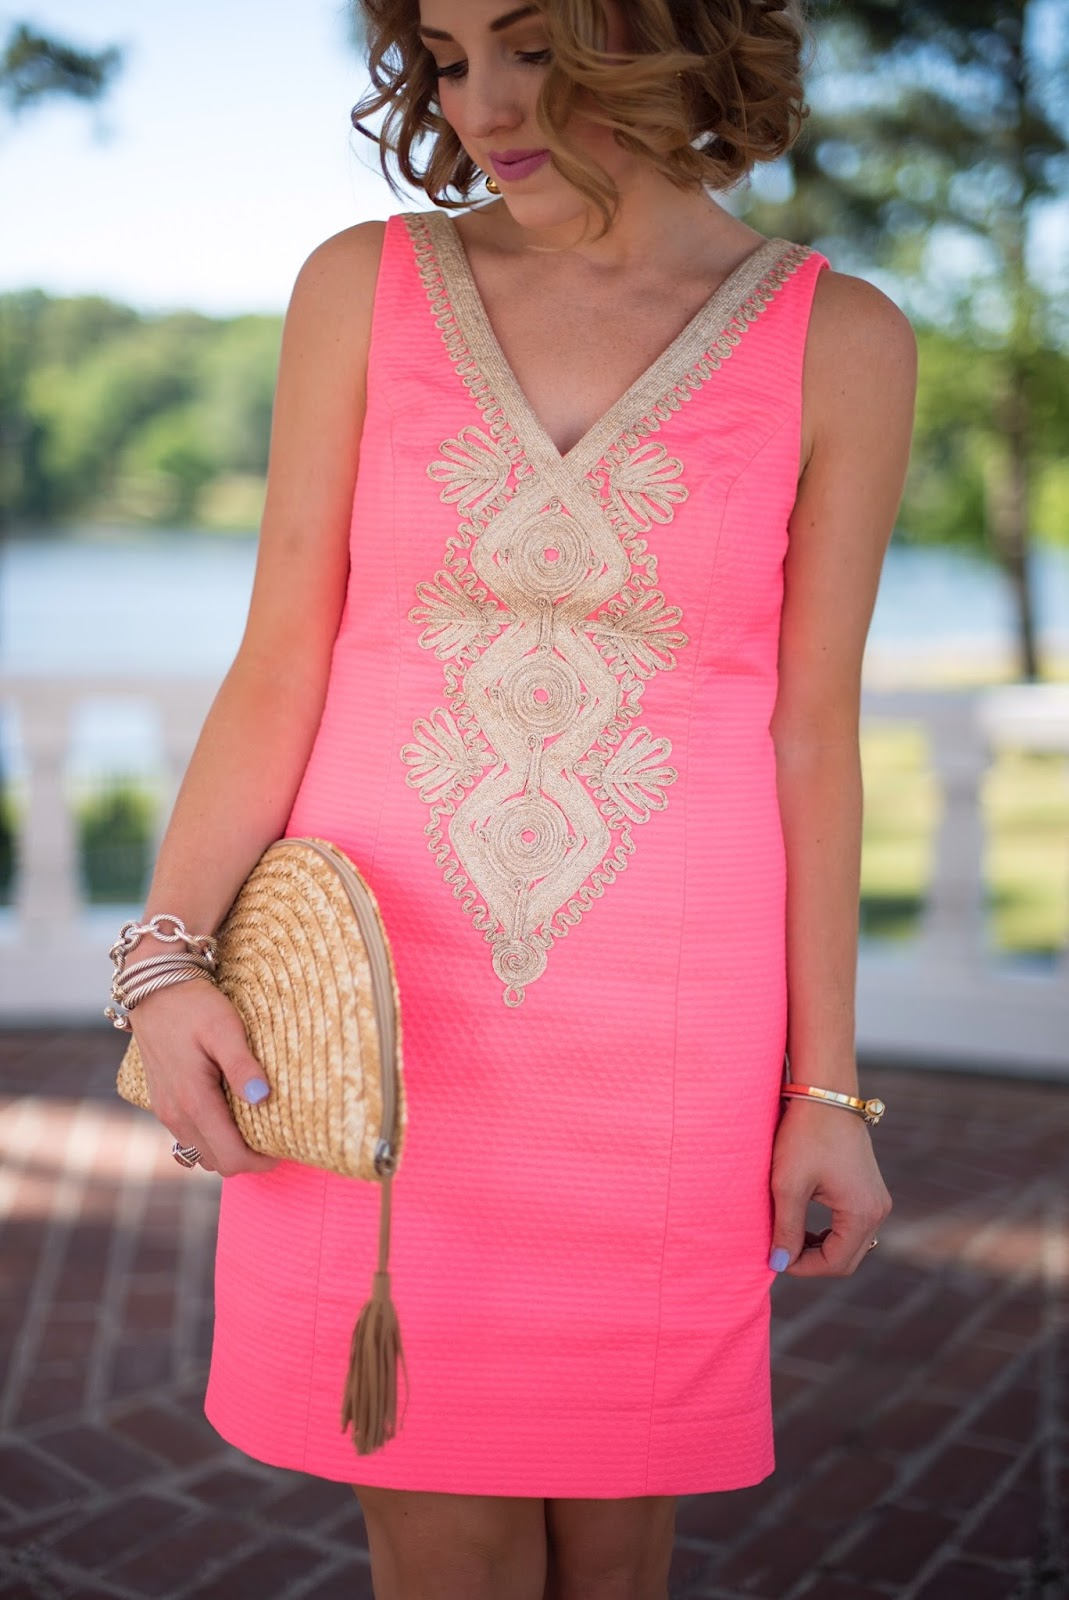 Lilly Pulitzer Junie Shift Dress - Click through to see more on Something Delightful!